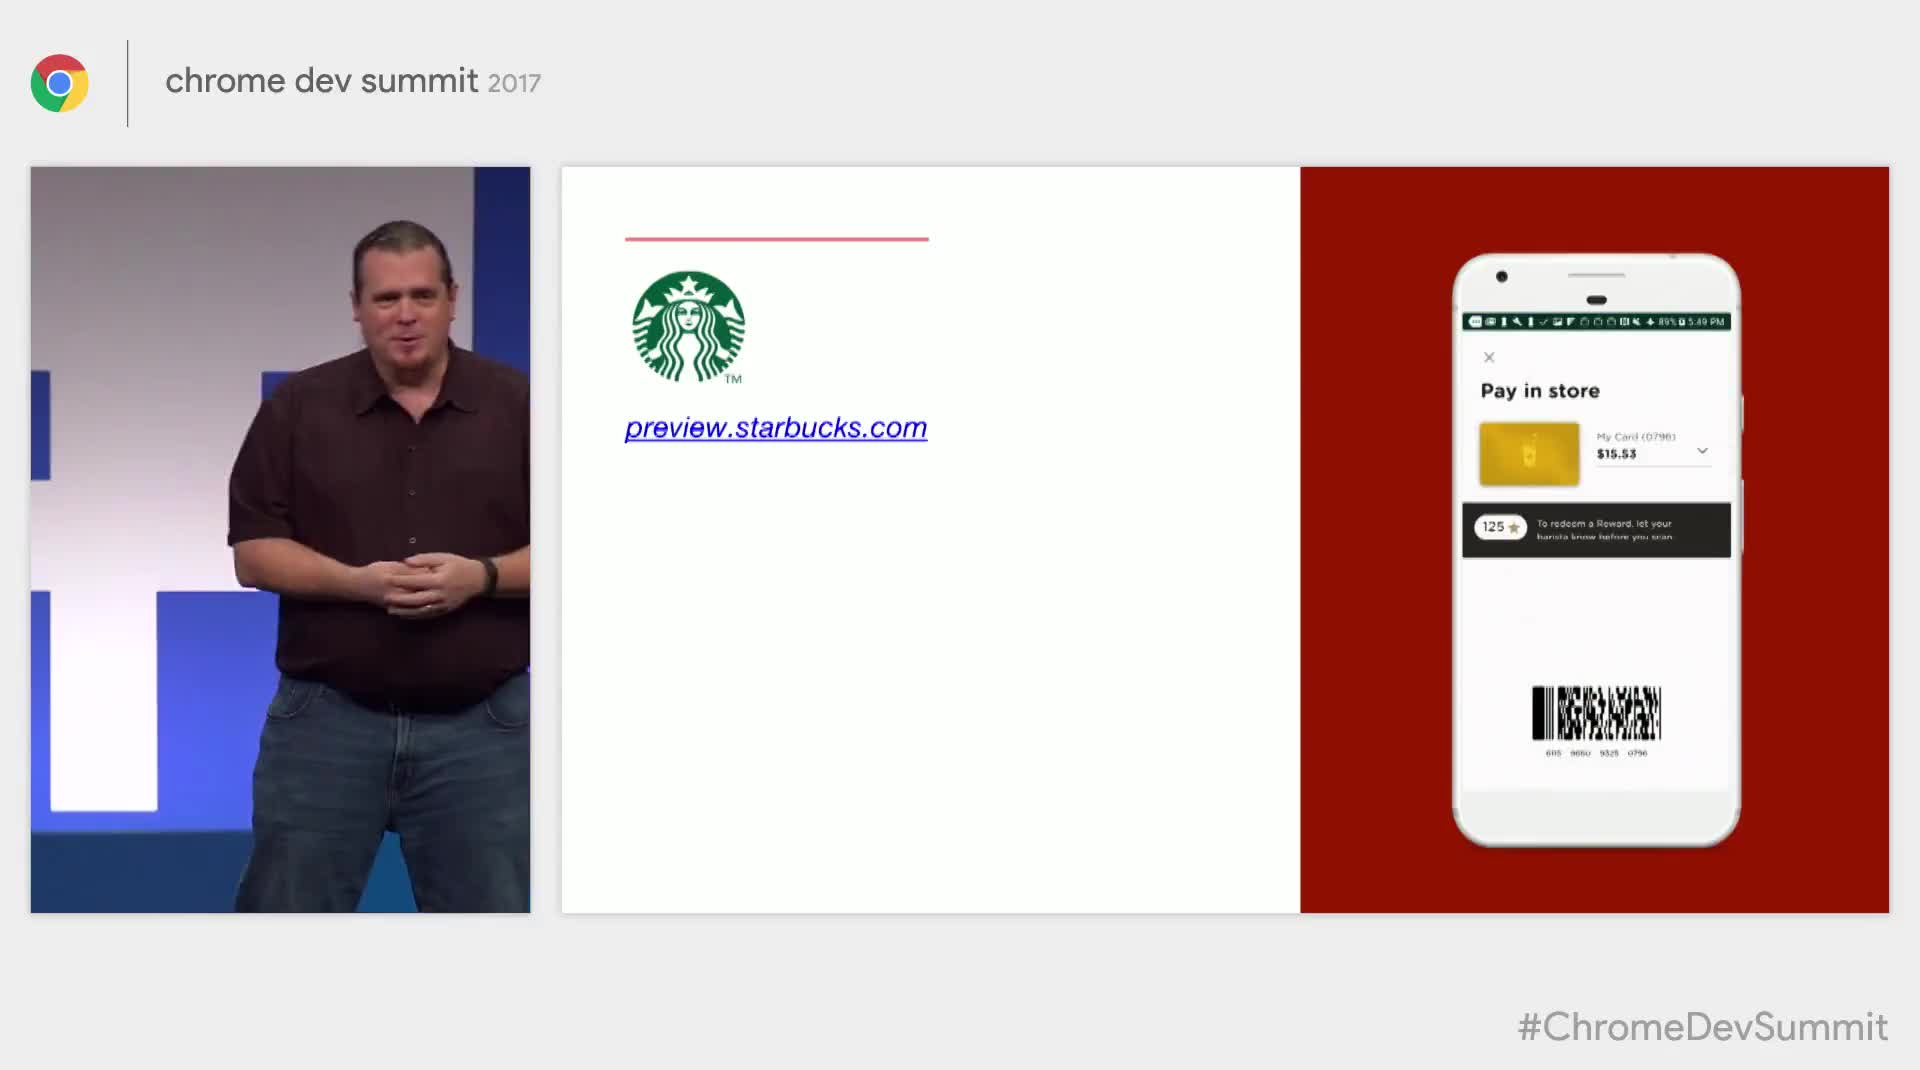 The New Bar for Web Experiences (Chrome Dev Summit 2017)